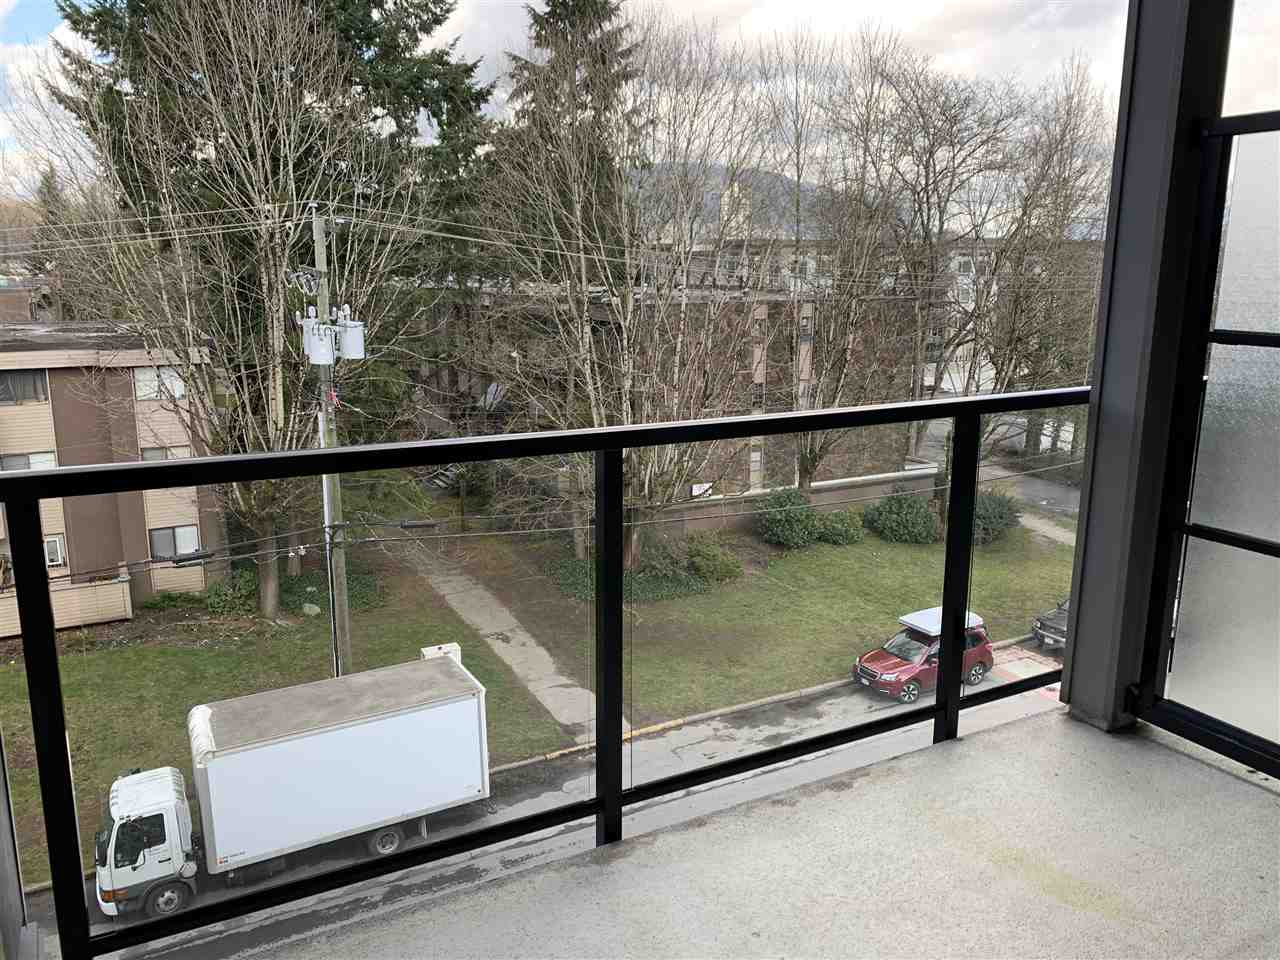 403 2436 KELLY AVENUE - Central Pt Coquitlam Apartment/Condo for sale, 1 Bedroom (R2481447) - #17